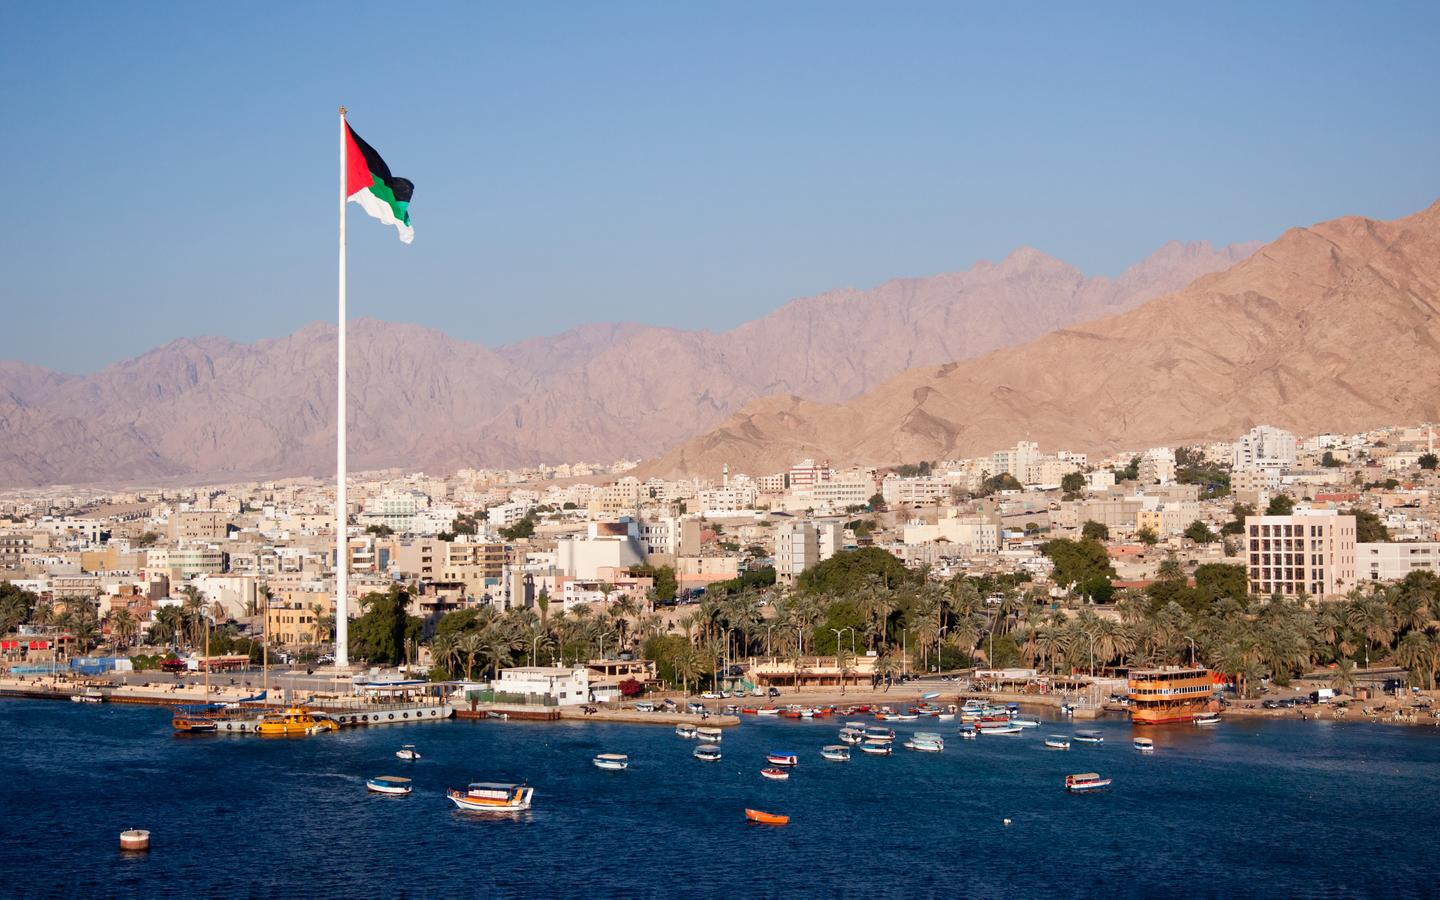 Hotels in Aqaba